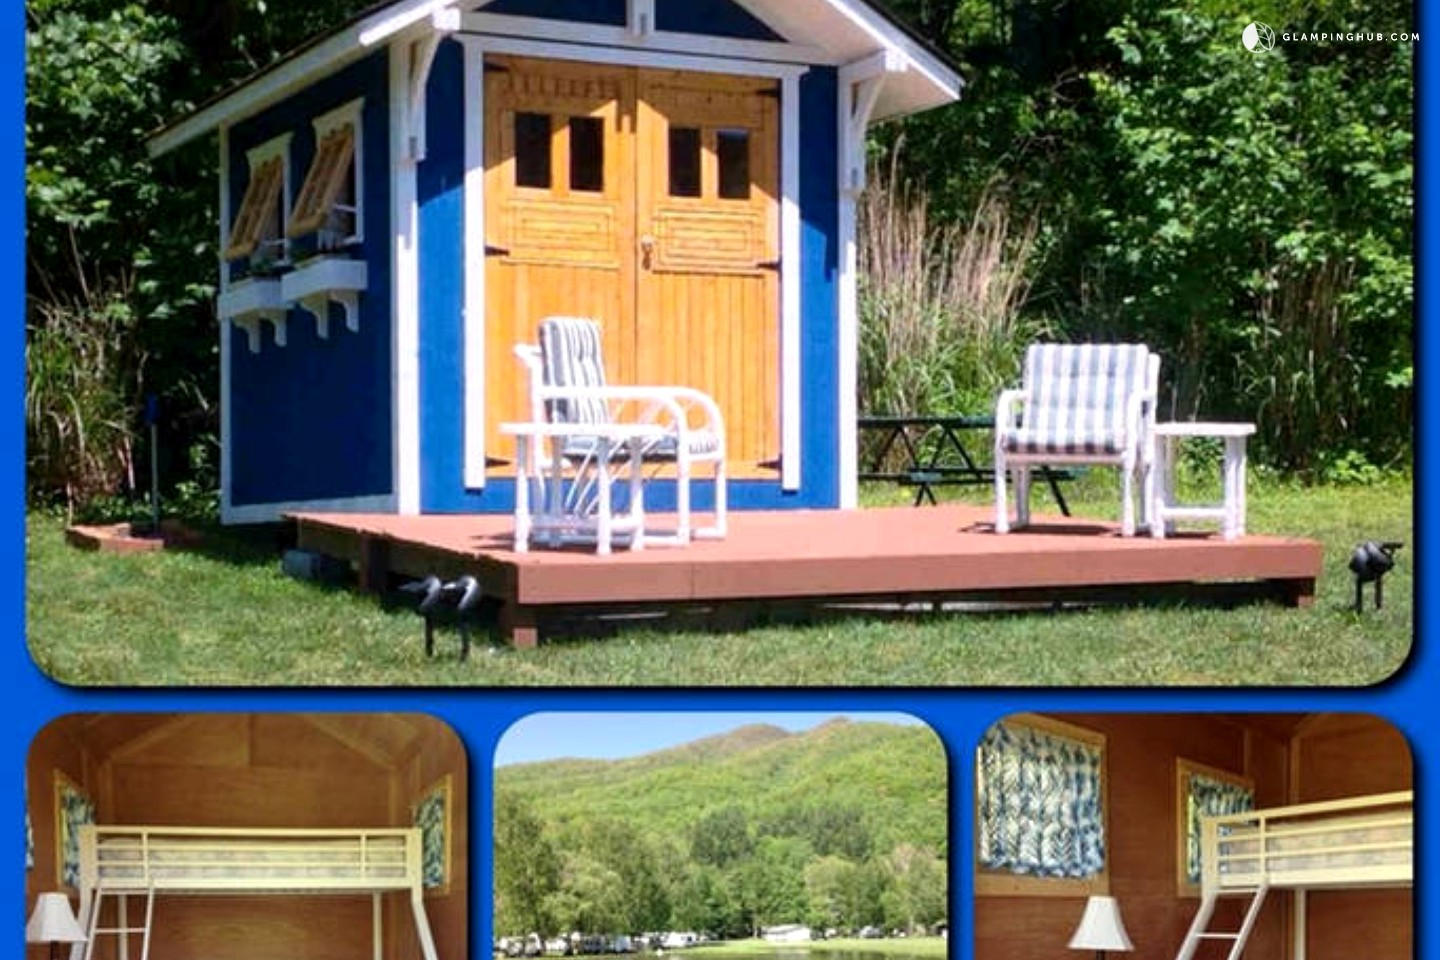 Cozy getaway cabin rental near asheville near north carolina for Asheville nc luxury cabin rentals